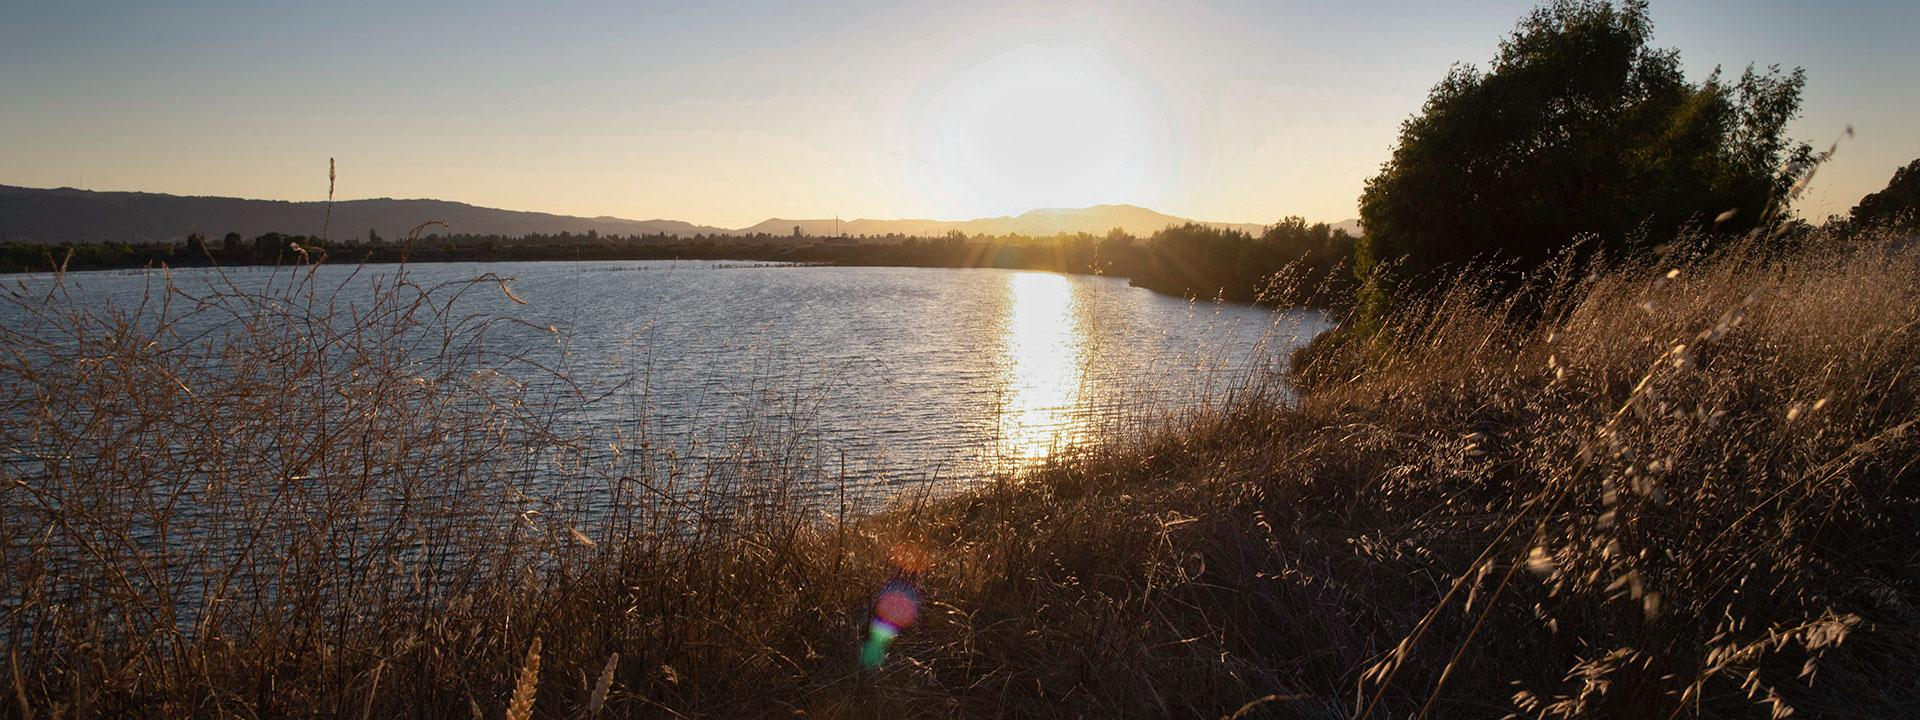 A blue lake surrounded by greenery and trees with a sunset reflected in the lake